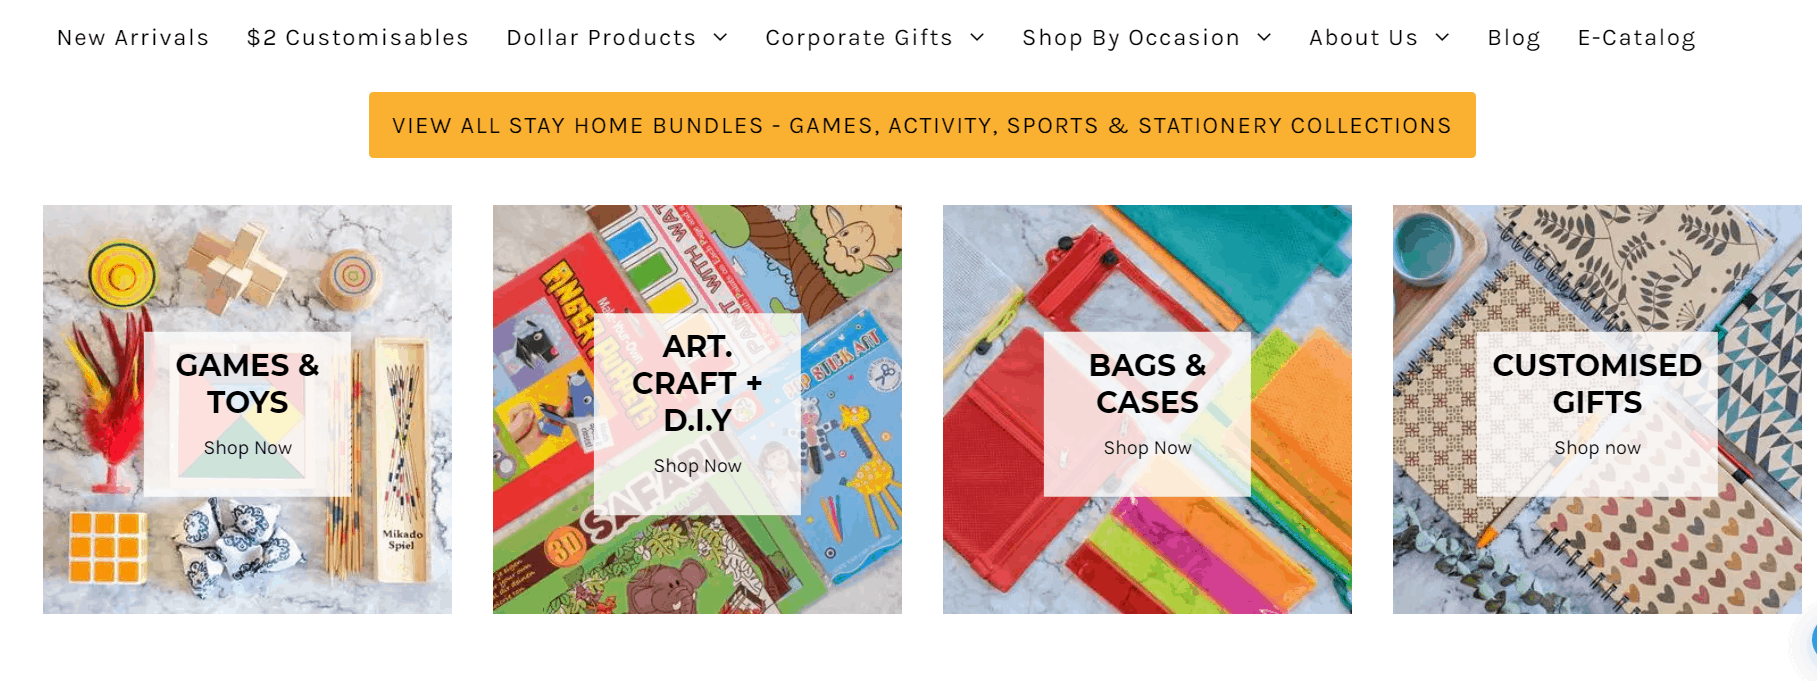 One Dollar Only Online Store is top 10 Stationery Shops In Singapore, Cheap Wholesale Stationery & Gift Online, value dollar shop singapore online,one dollar only discount code,one dollar shop online,one dollar shop near me, one dollar shop usa,cheap stationery shop singapore,value dollar shop near me